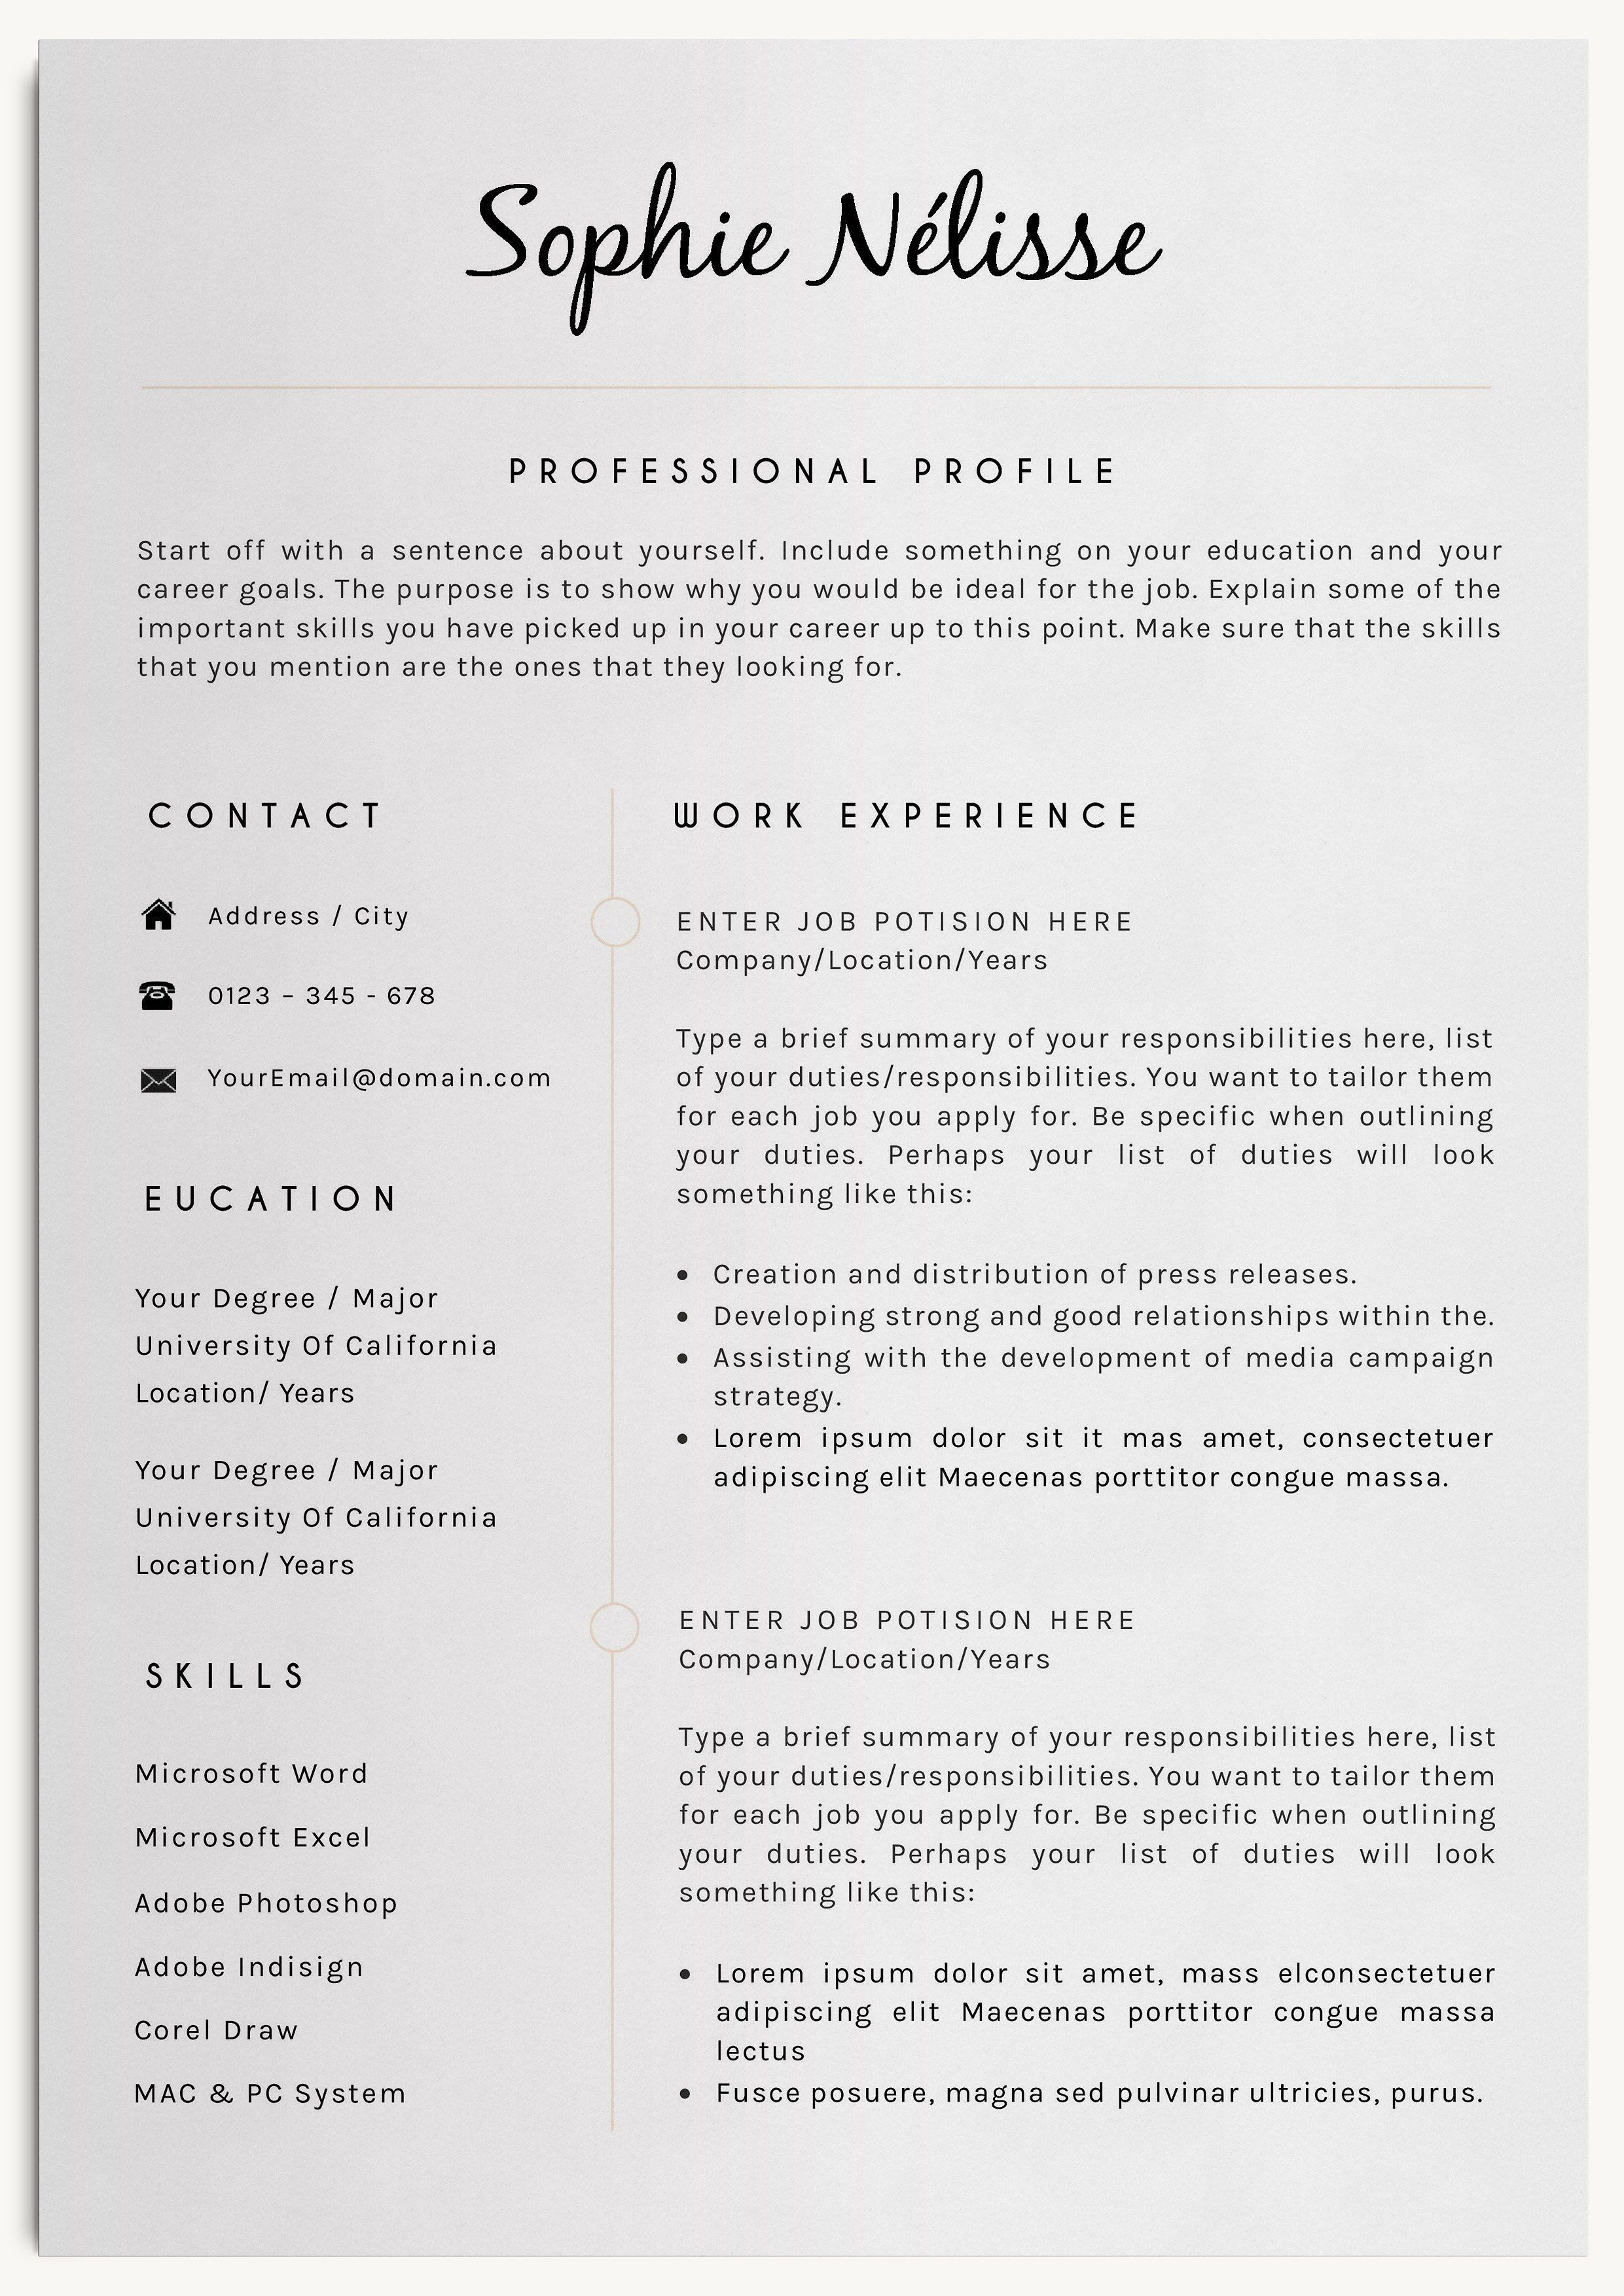 Professional Resume Template With Cover Letter And Reference Page